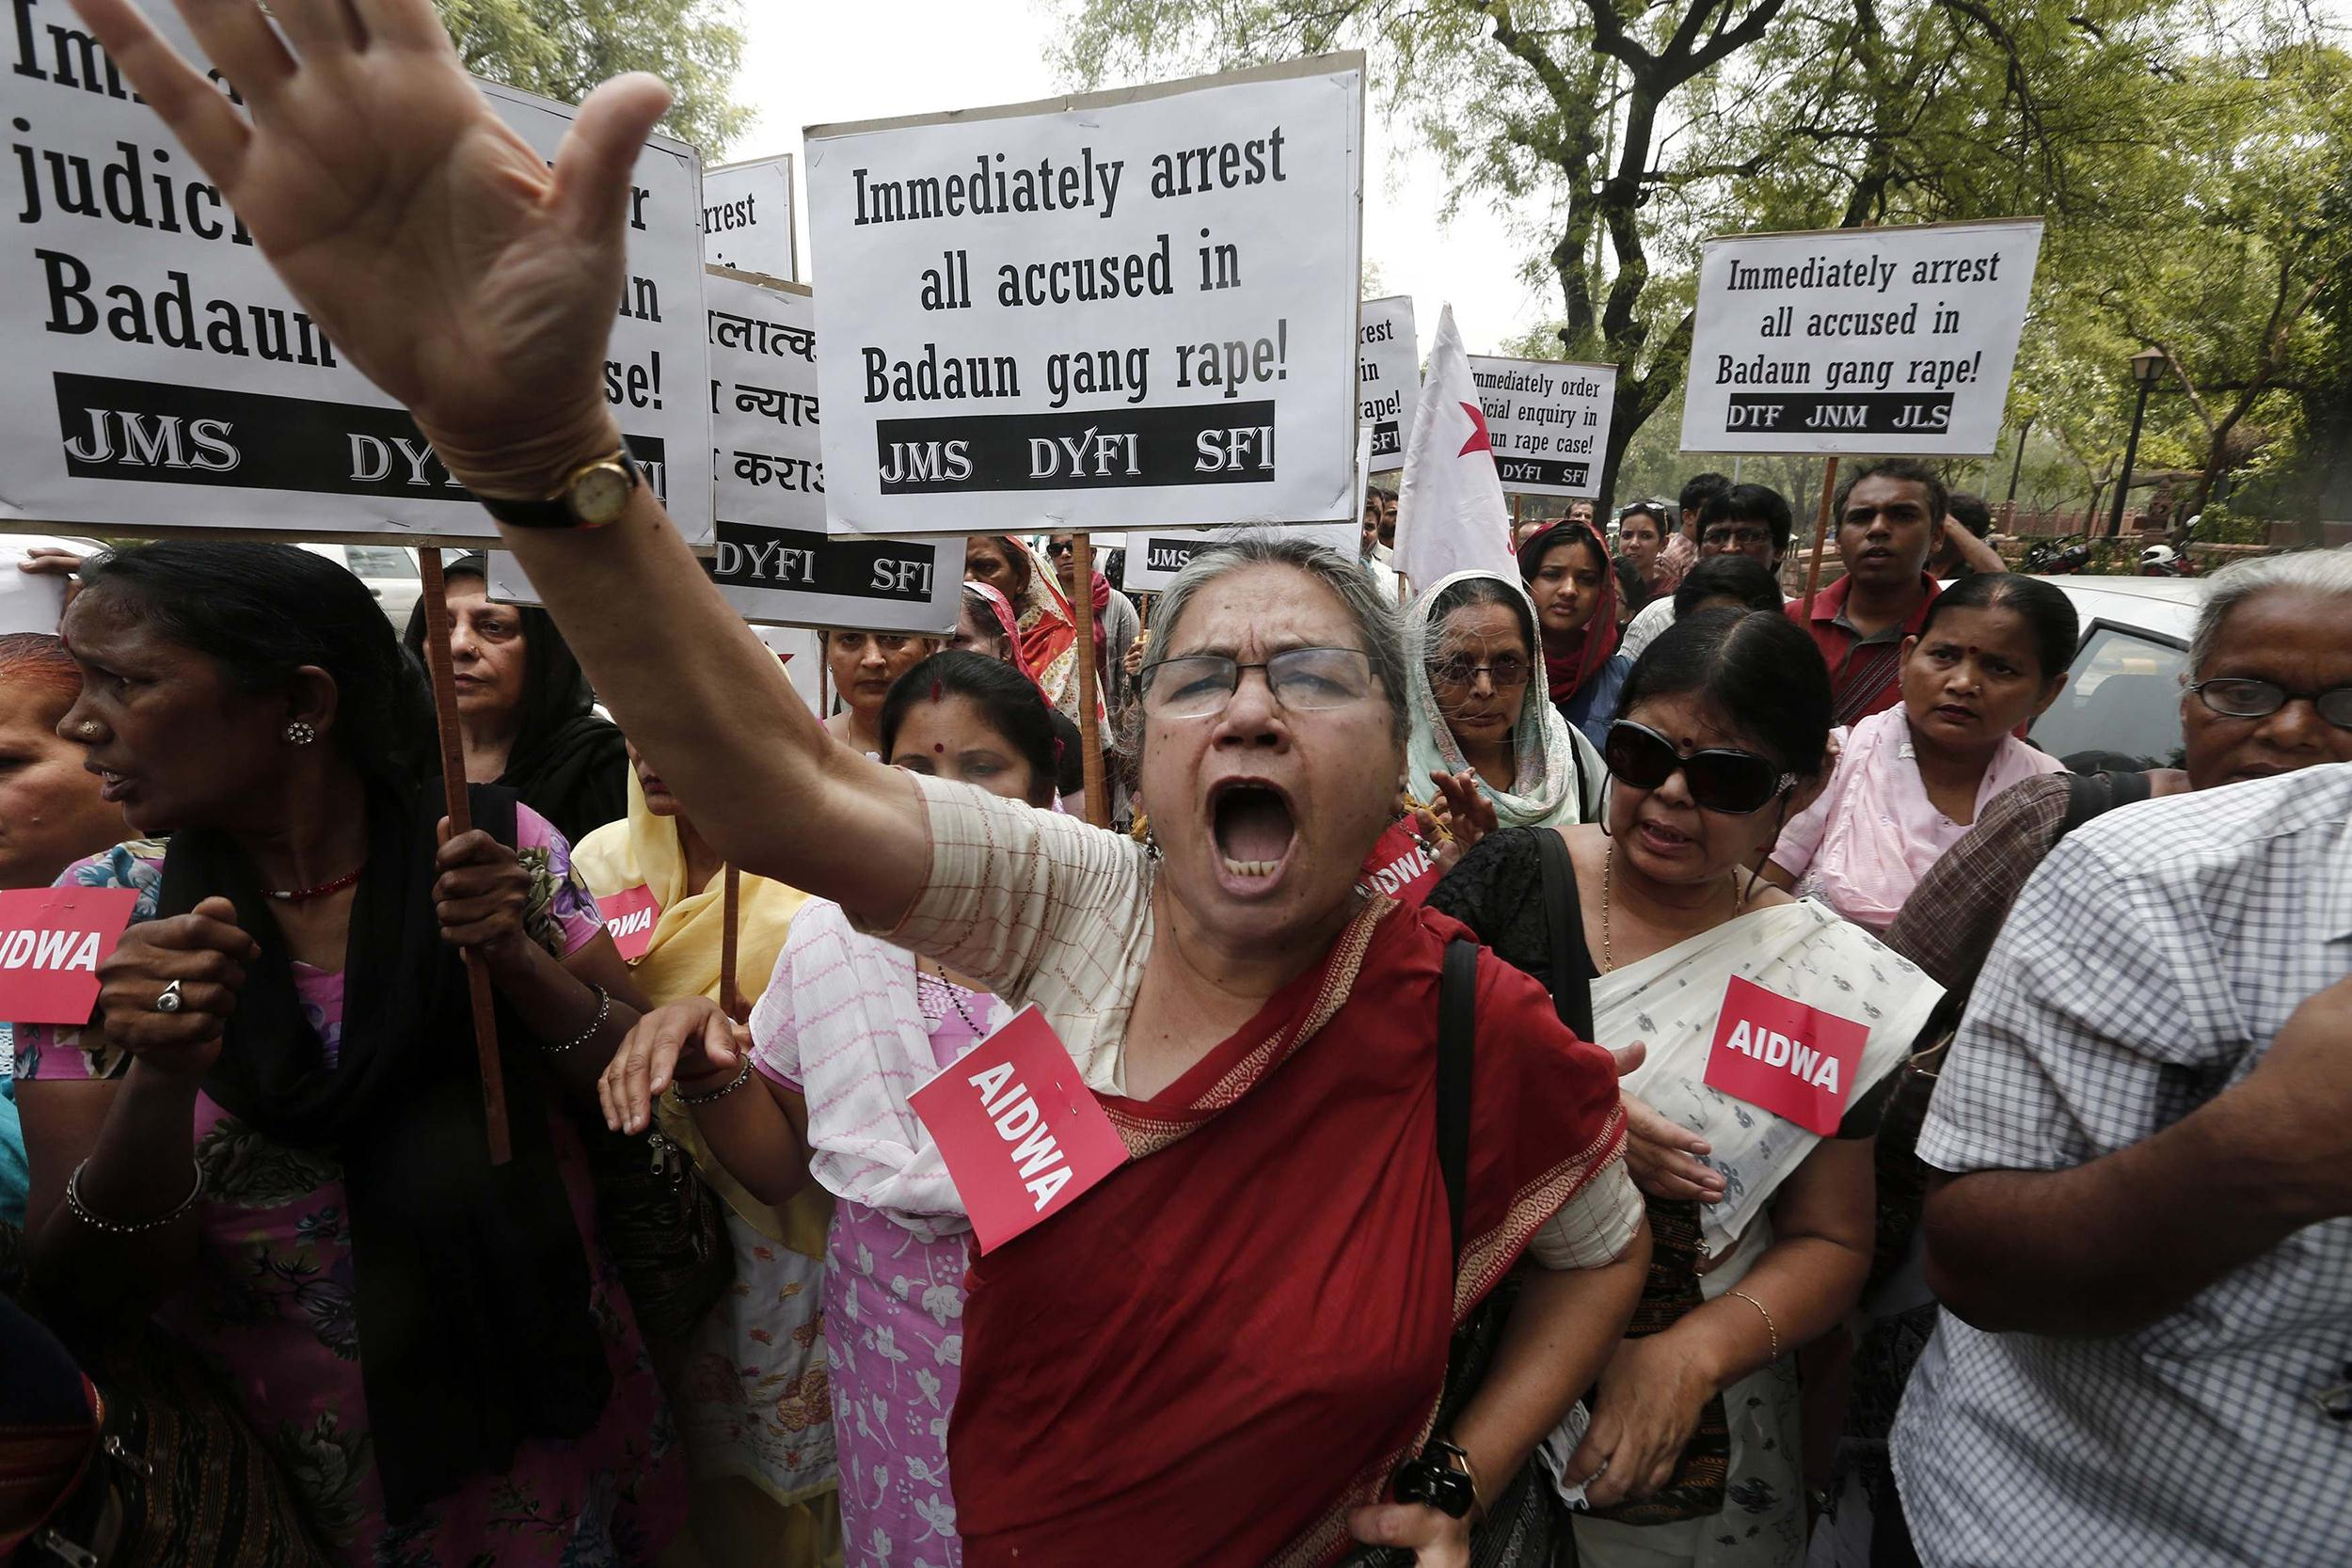 Image: Demonstrators from AIDWA hold placards and shout slogans during protest against recent killings of two teenage girls, in New Delhi